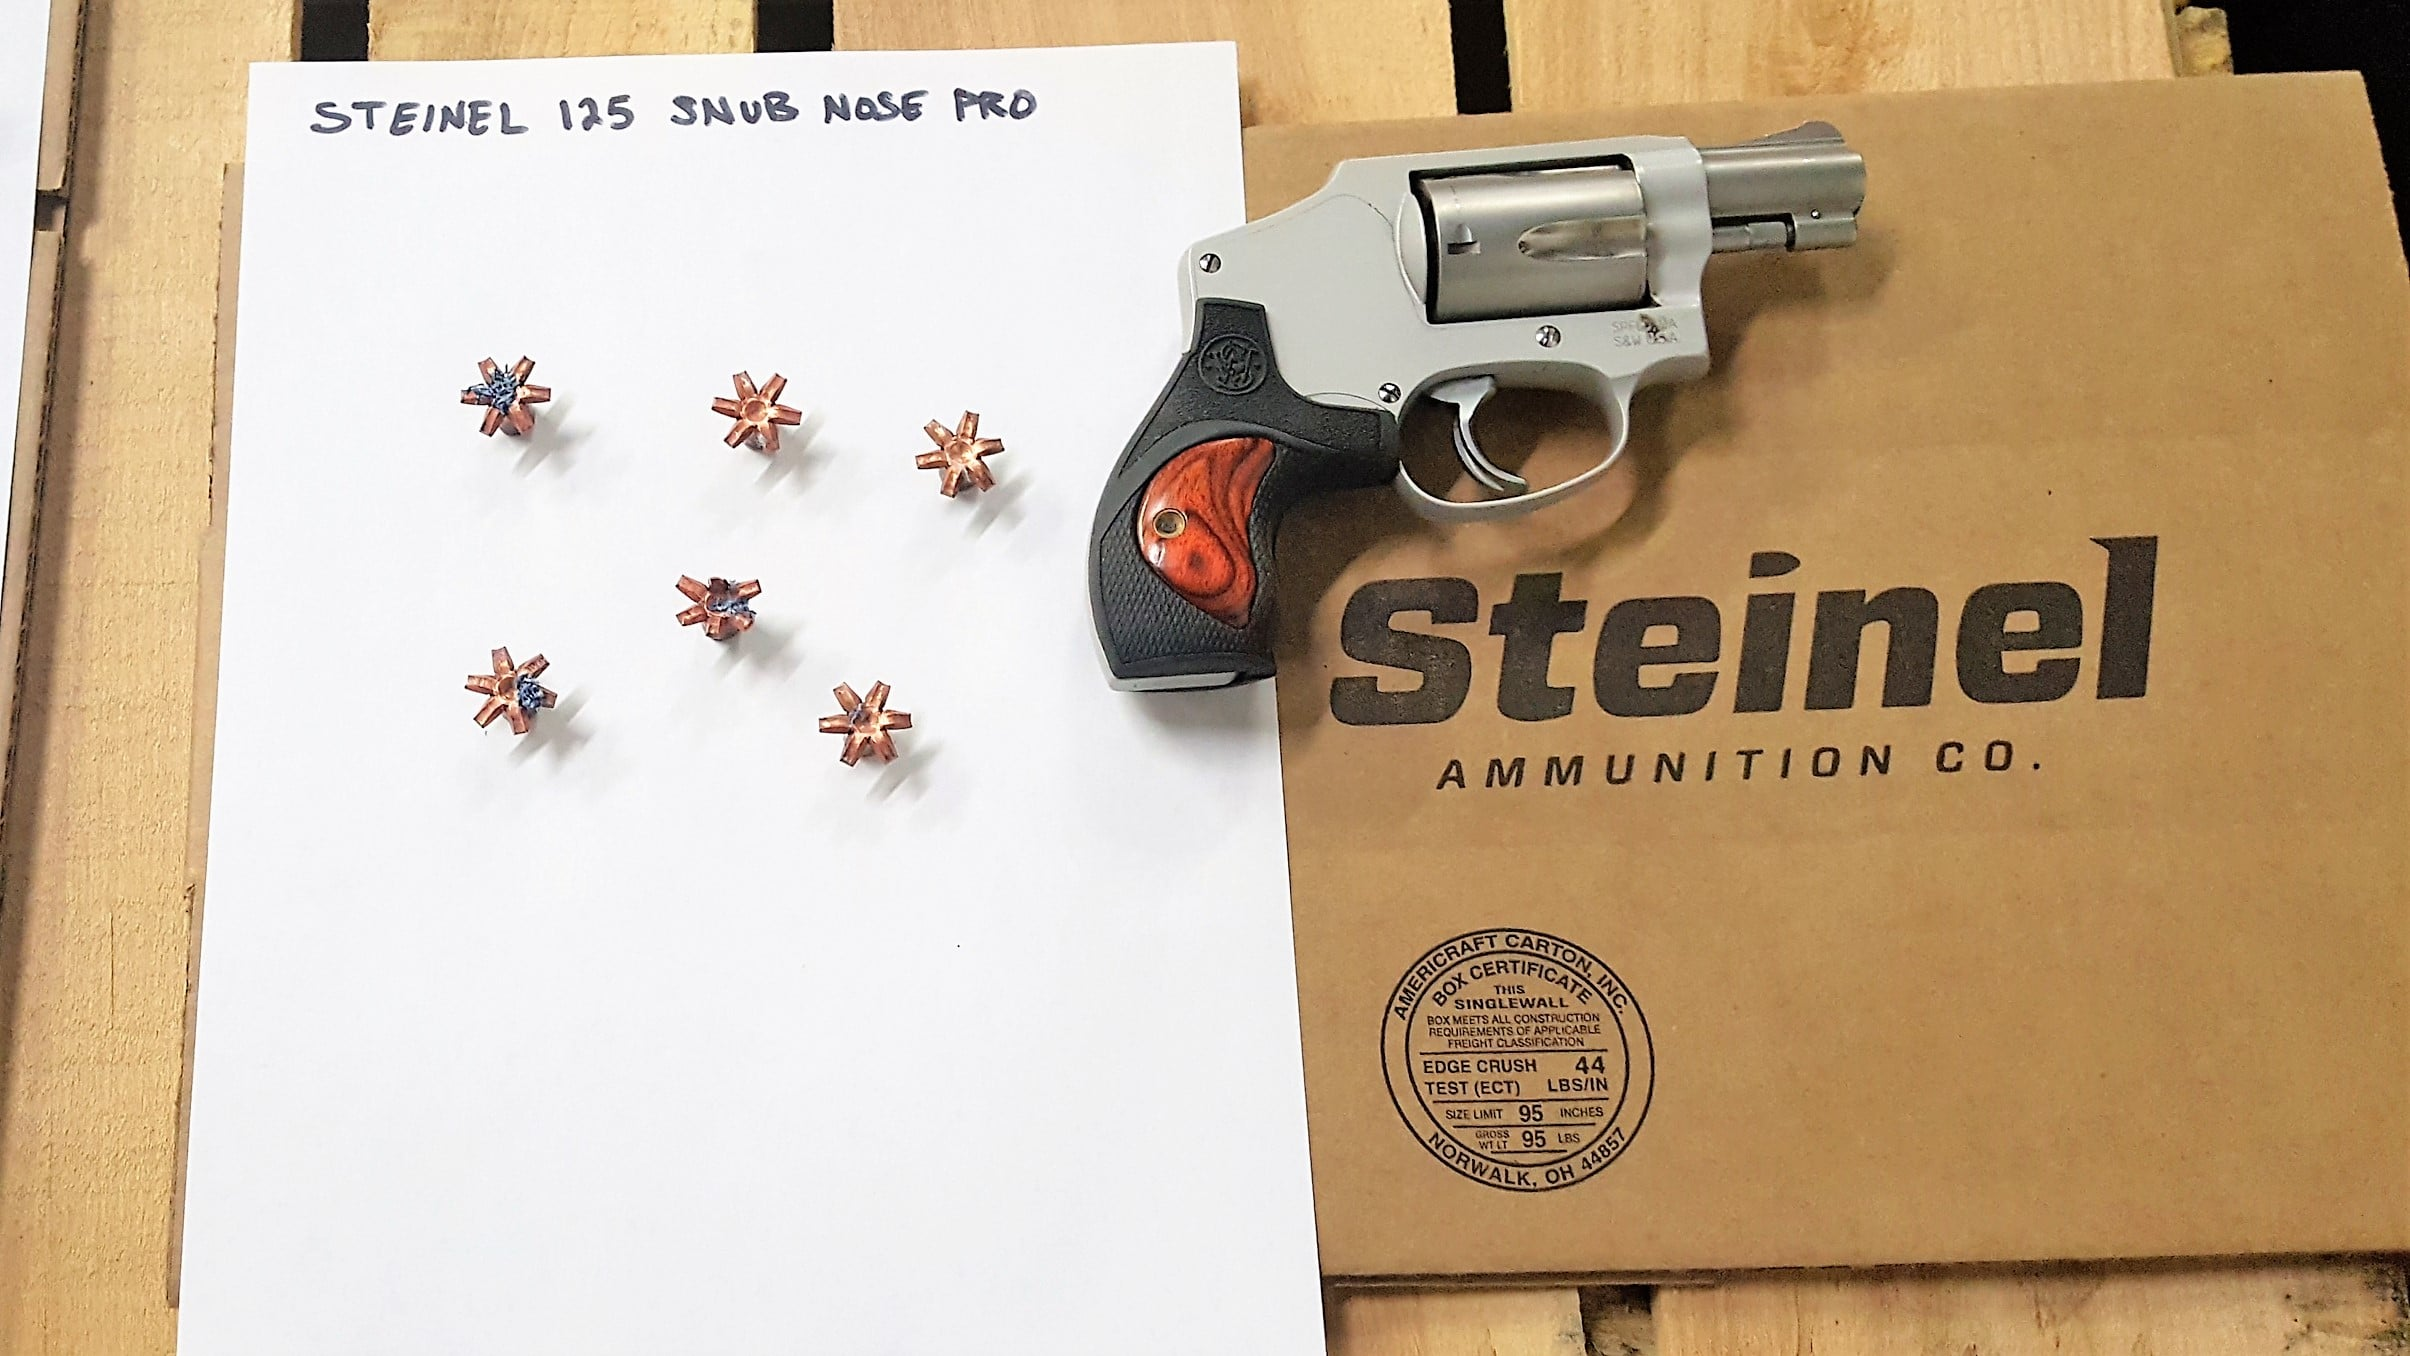 Best 38 Special Ammo For Self Defense